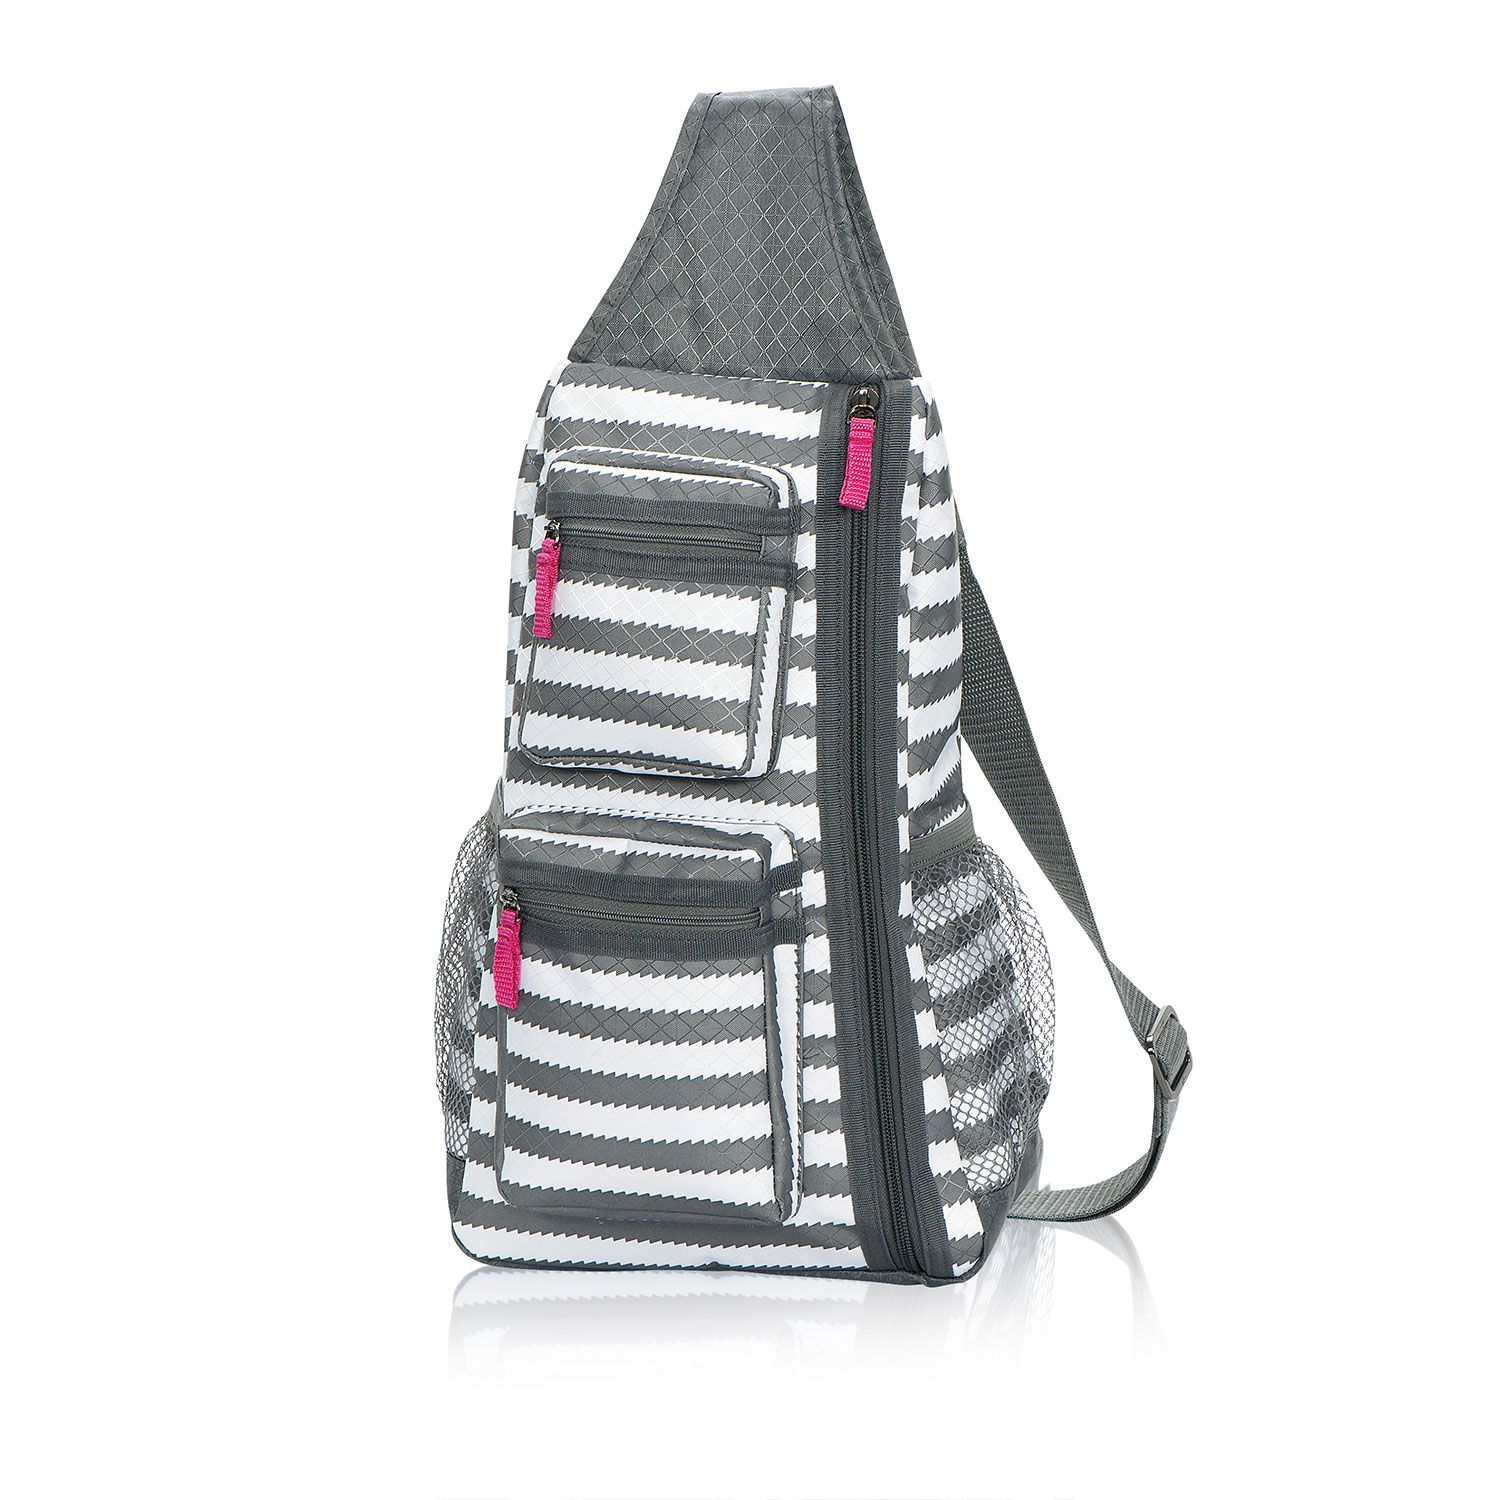 Sling-Back Bag in Grey Wave for $45 - So easy to grab and go, this ...